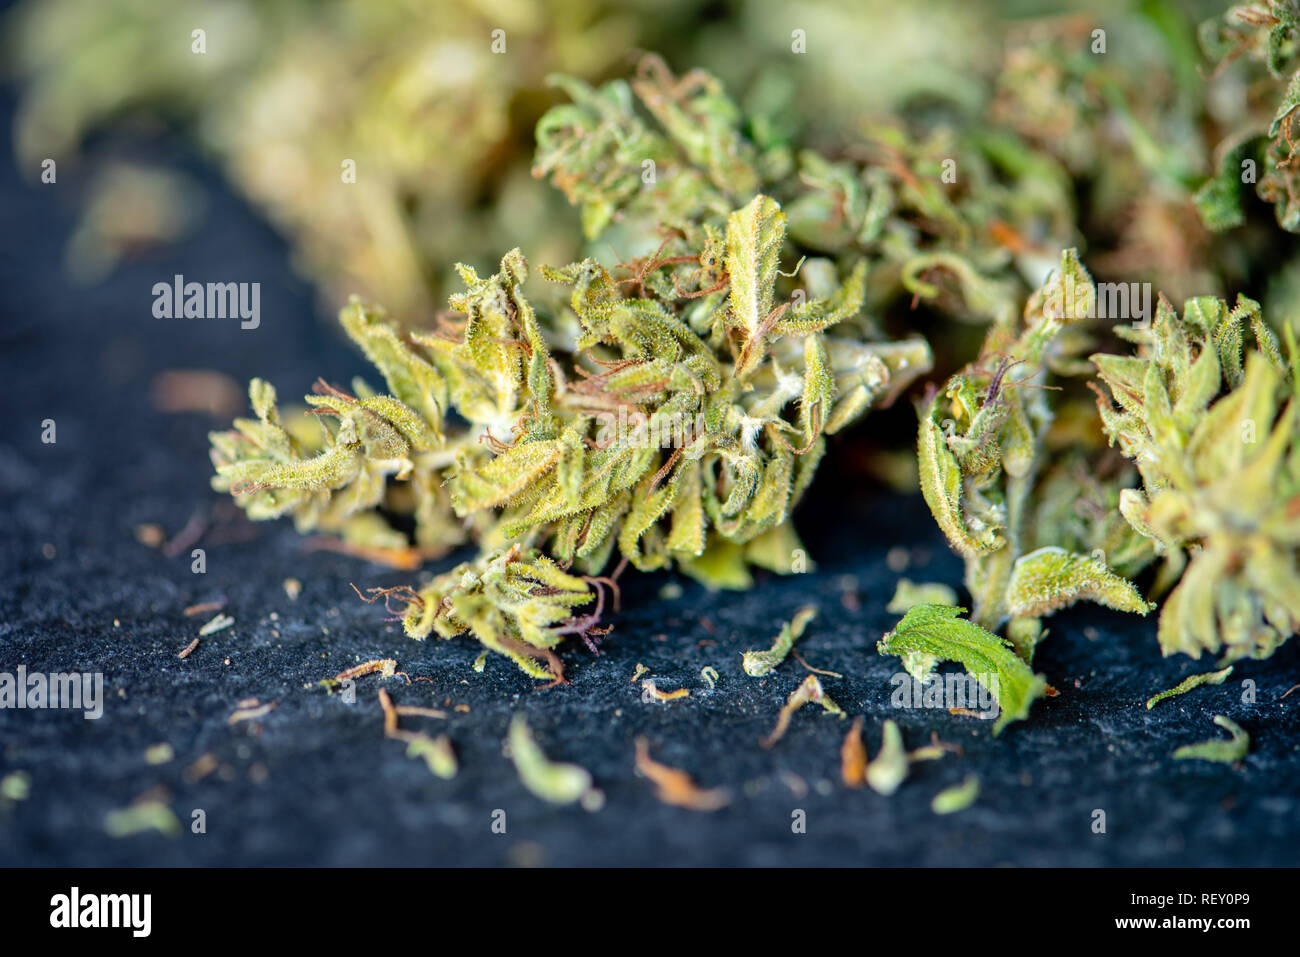 detail of medical hemp buds used to obtain essential oil